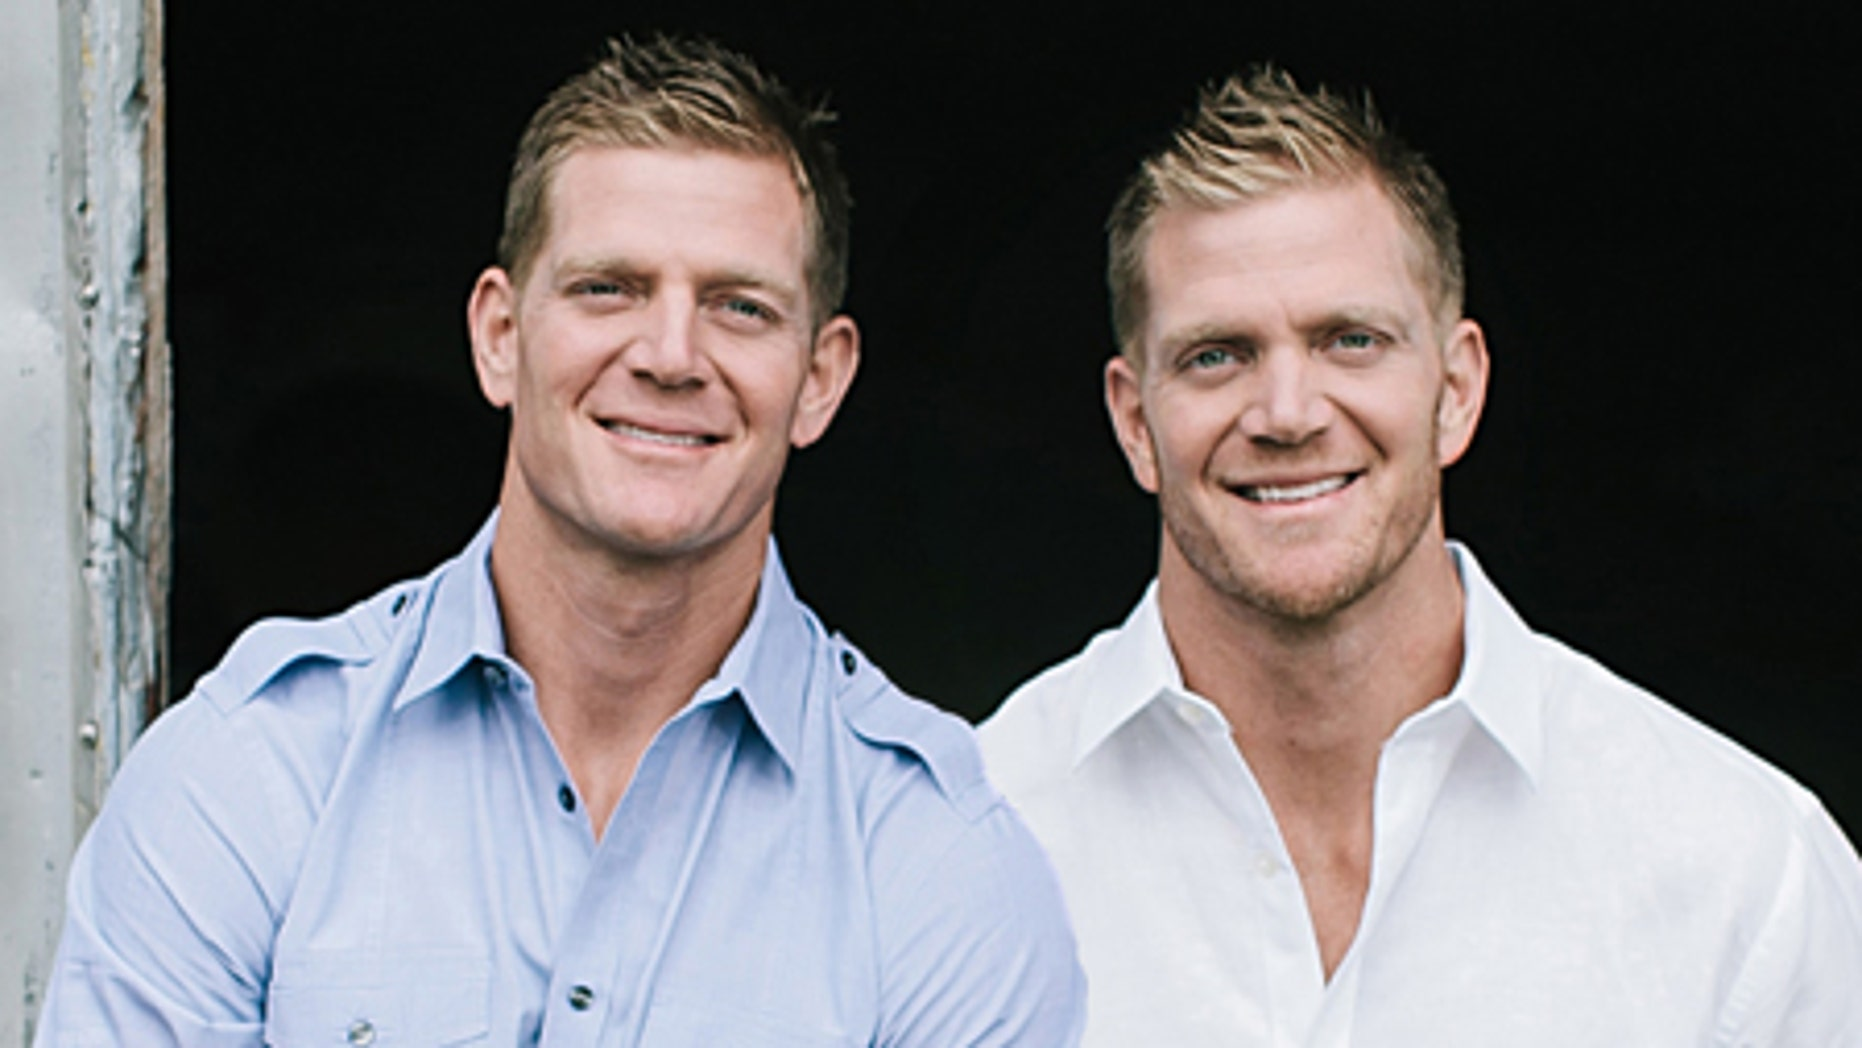 David and Jason Benham